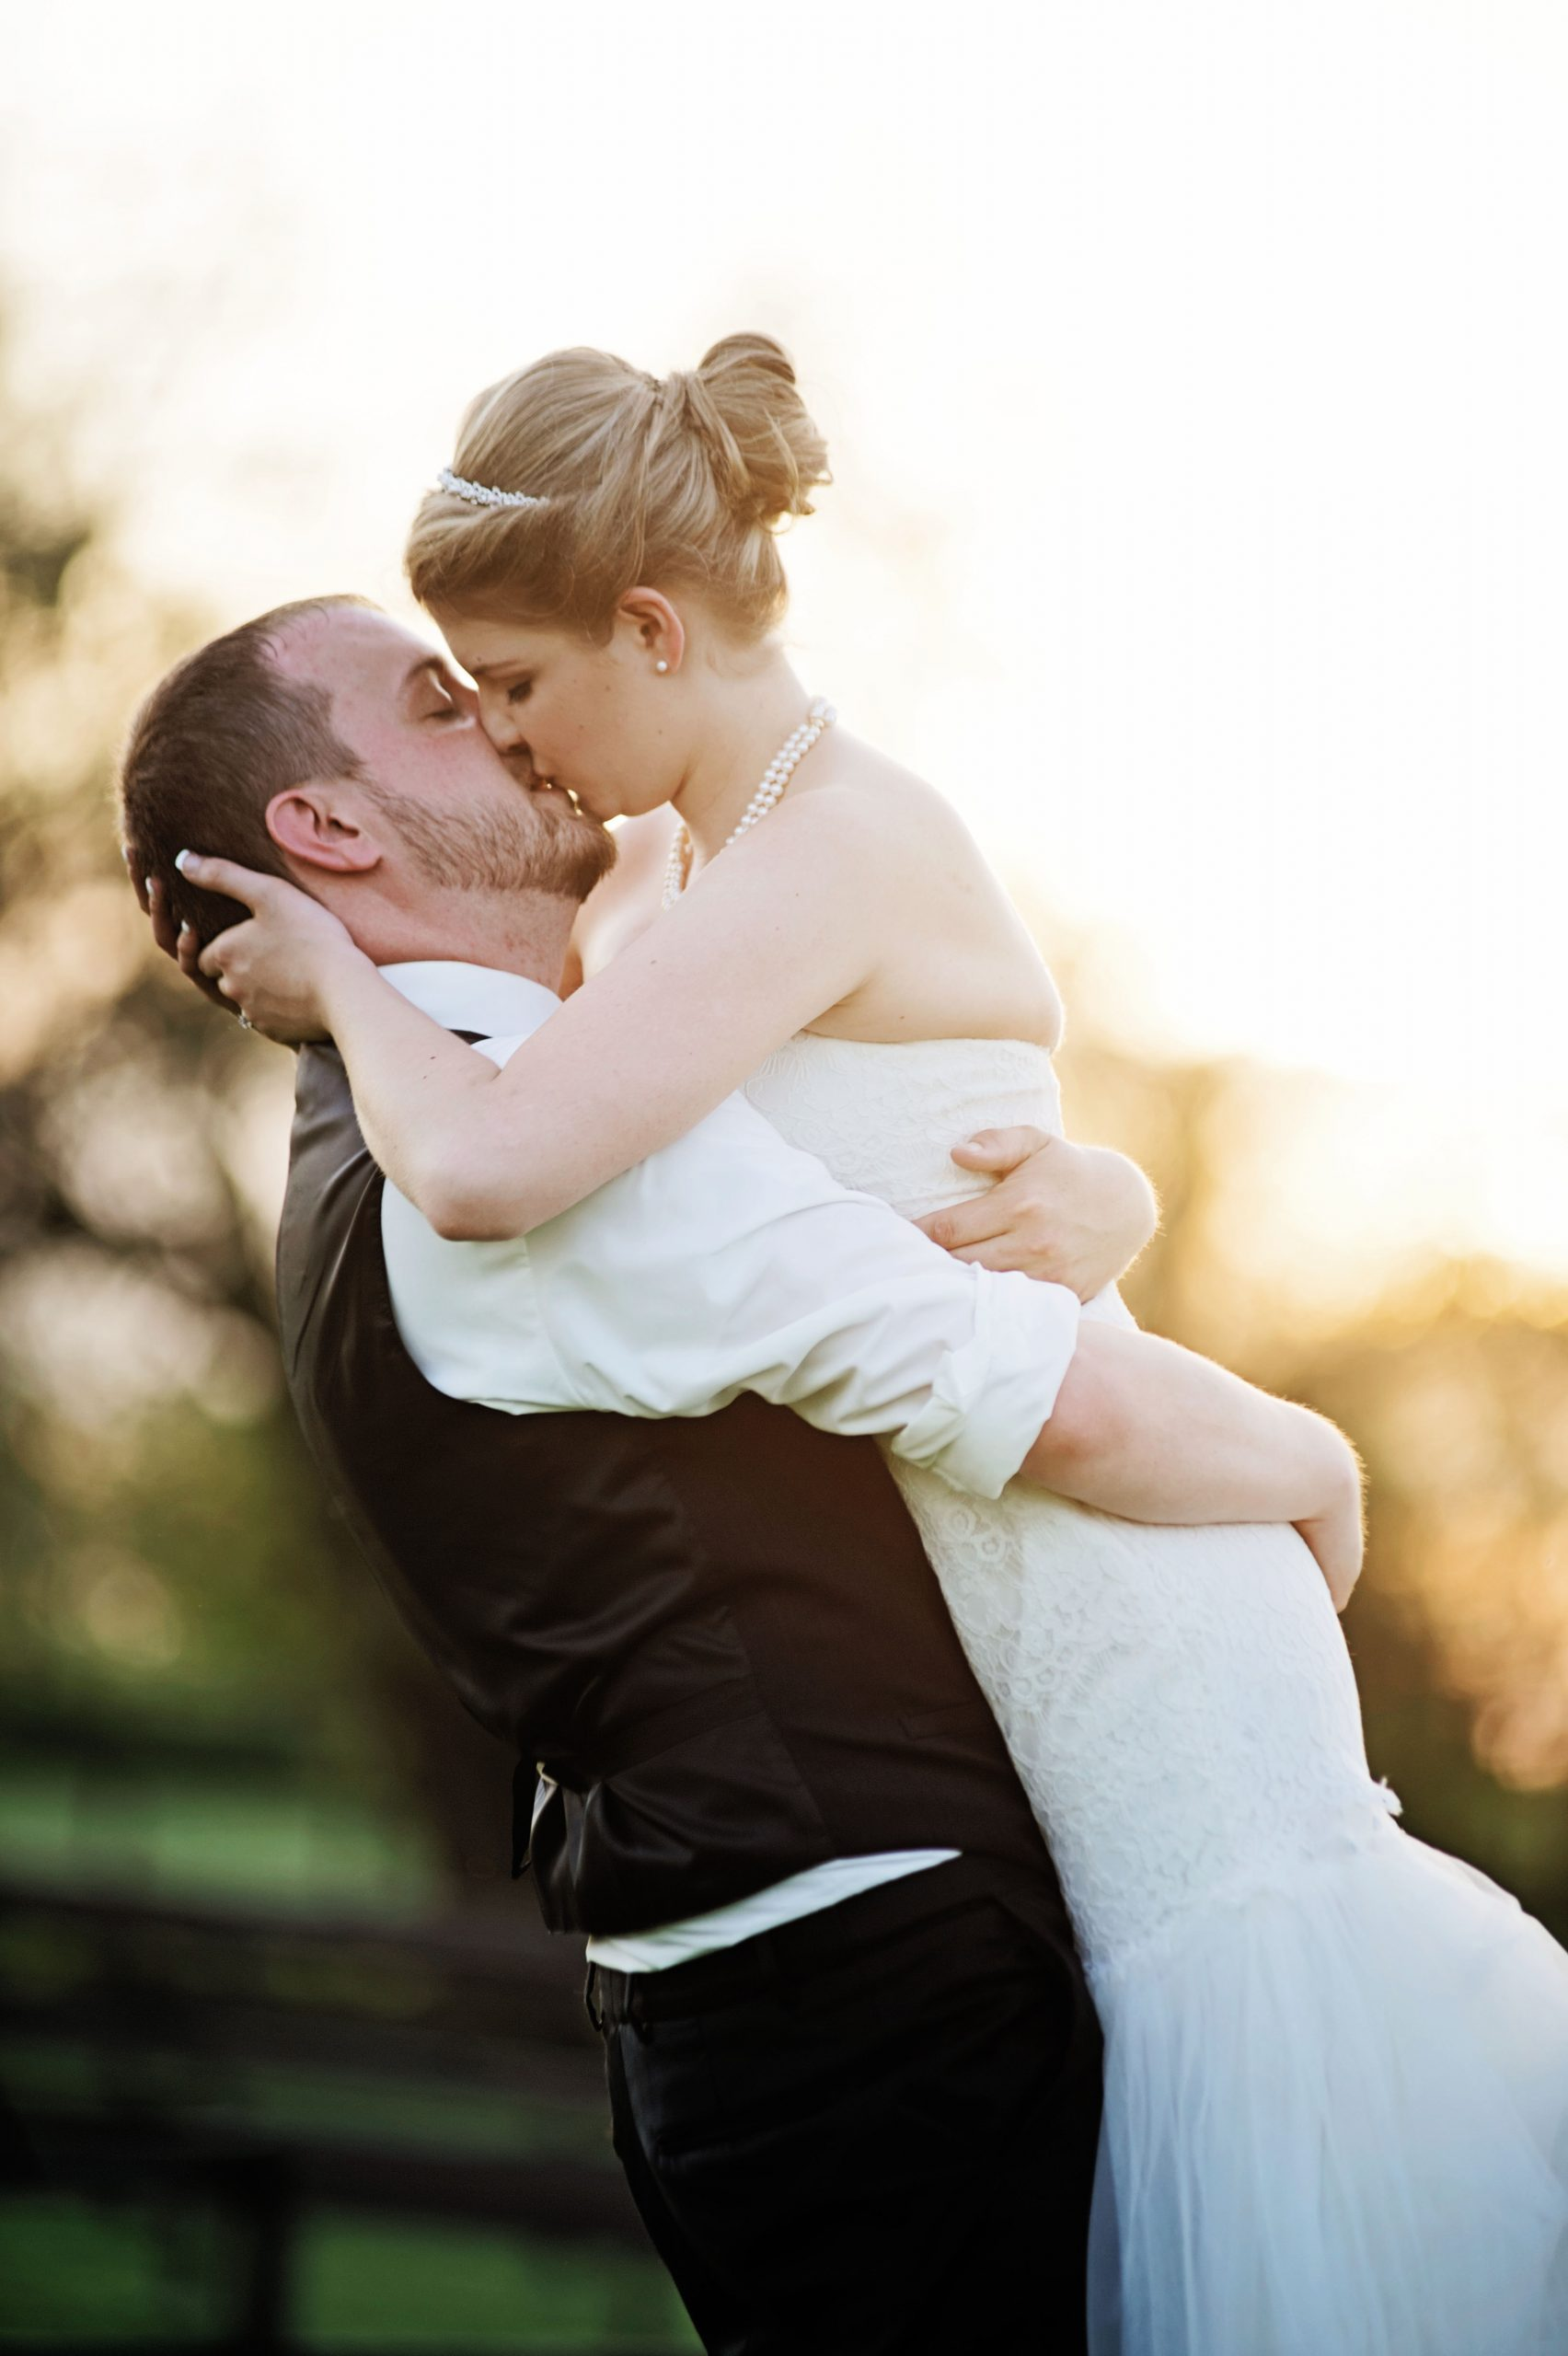 A loving kiss captured by Lovefusion Photography at Lakeview Farms in York, PA. Featured on Dream Weddings.